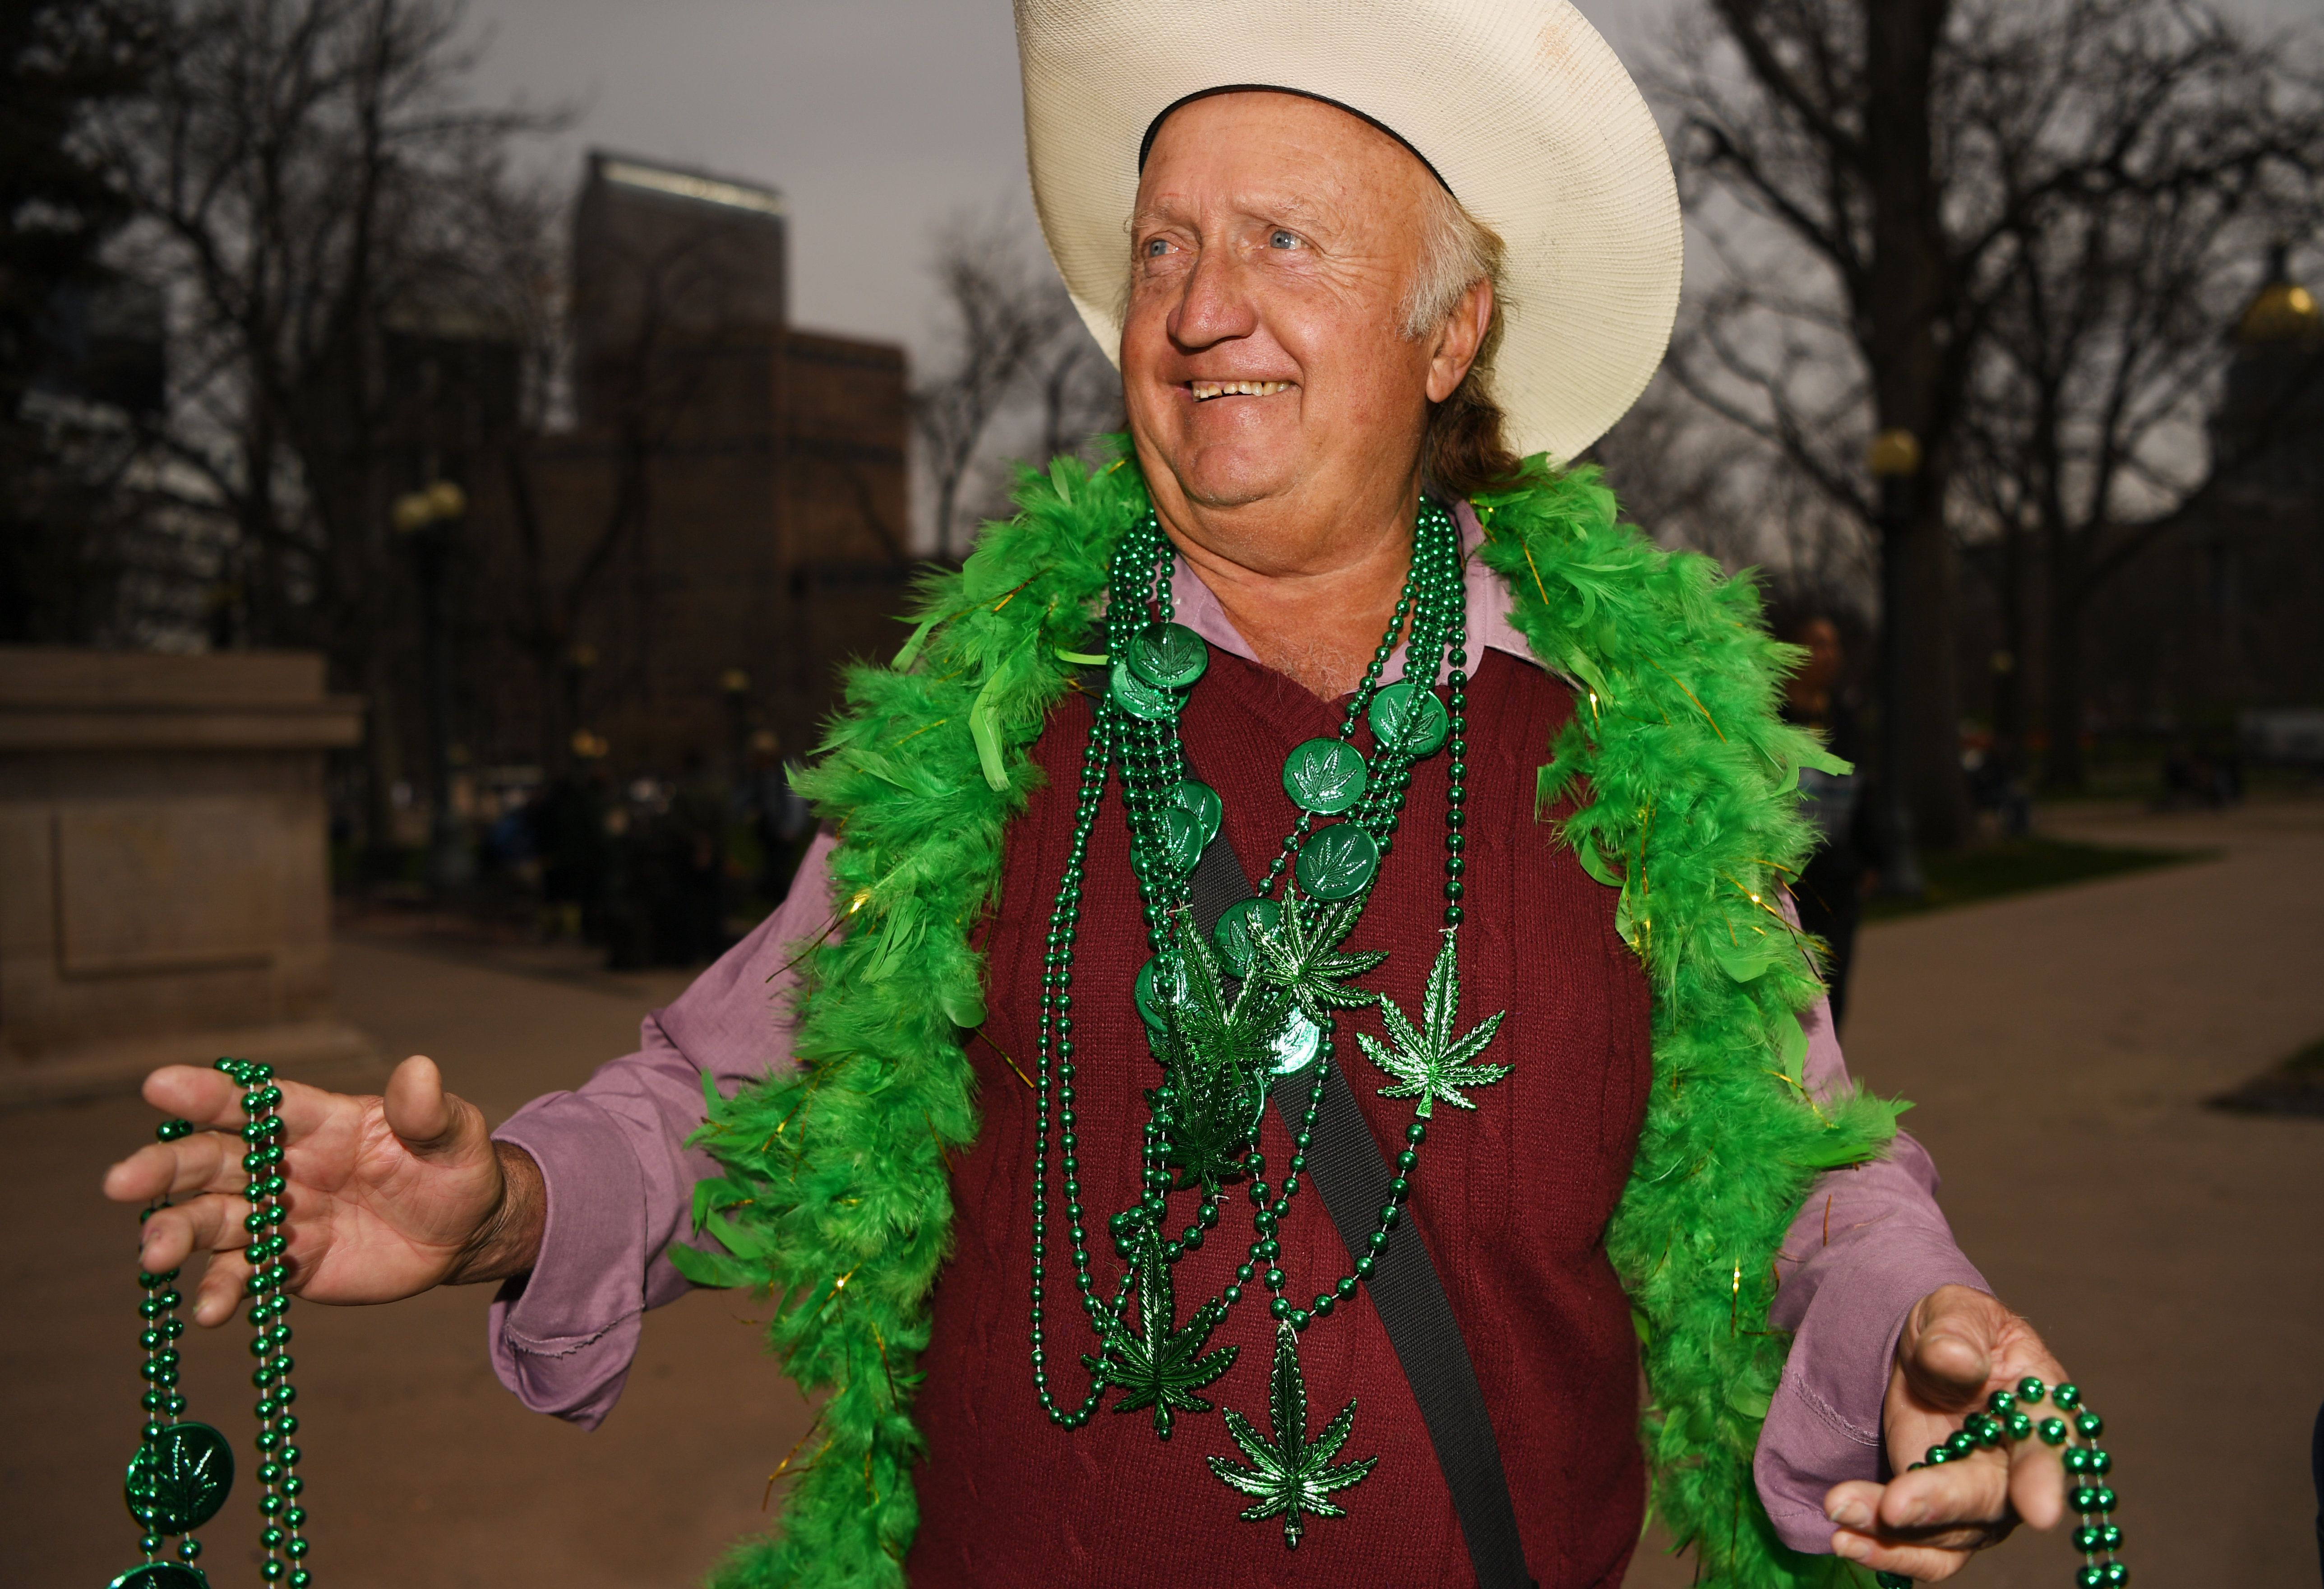 DENVER, CO - APRIL 20: Jerry Ludke sells weed necklaces during the 420 celebration at Civic Center Park in Denver, April 20, 2016. People gather at the park to celebrate marijuana. (Photo by RJ Sangosti/The Denver Post via Getty Images)